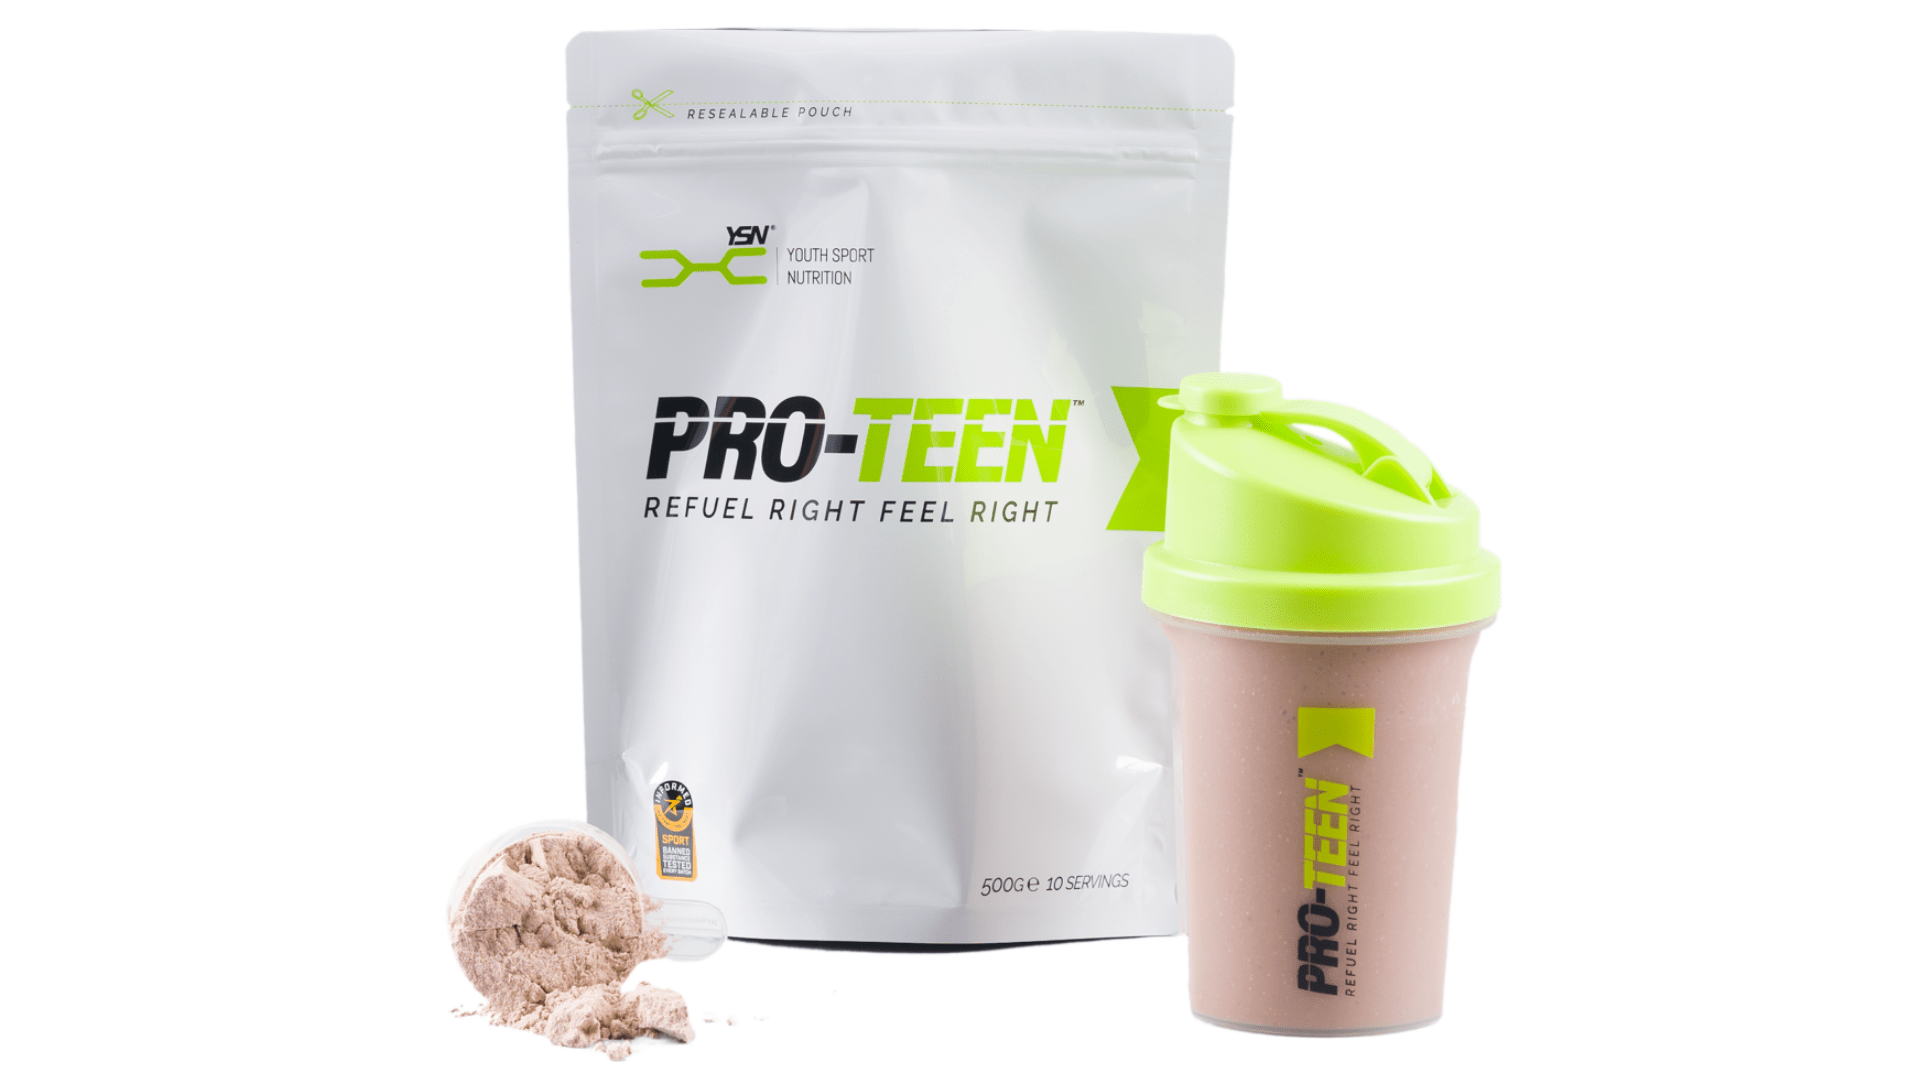 PRO-TEEN - Fortified recovery shake for young athletes in sport